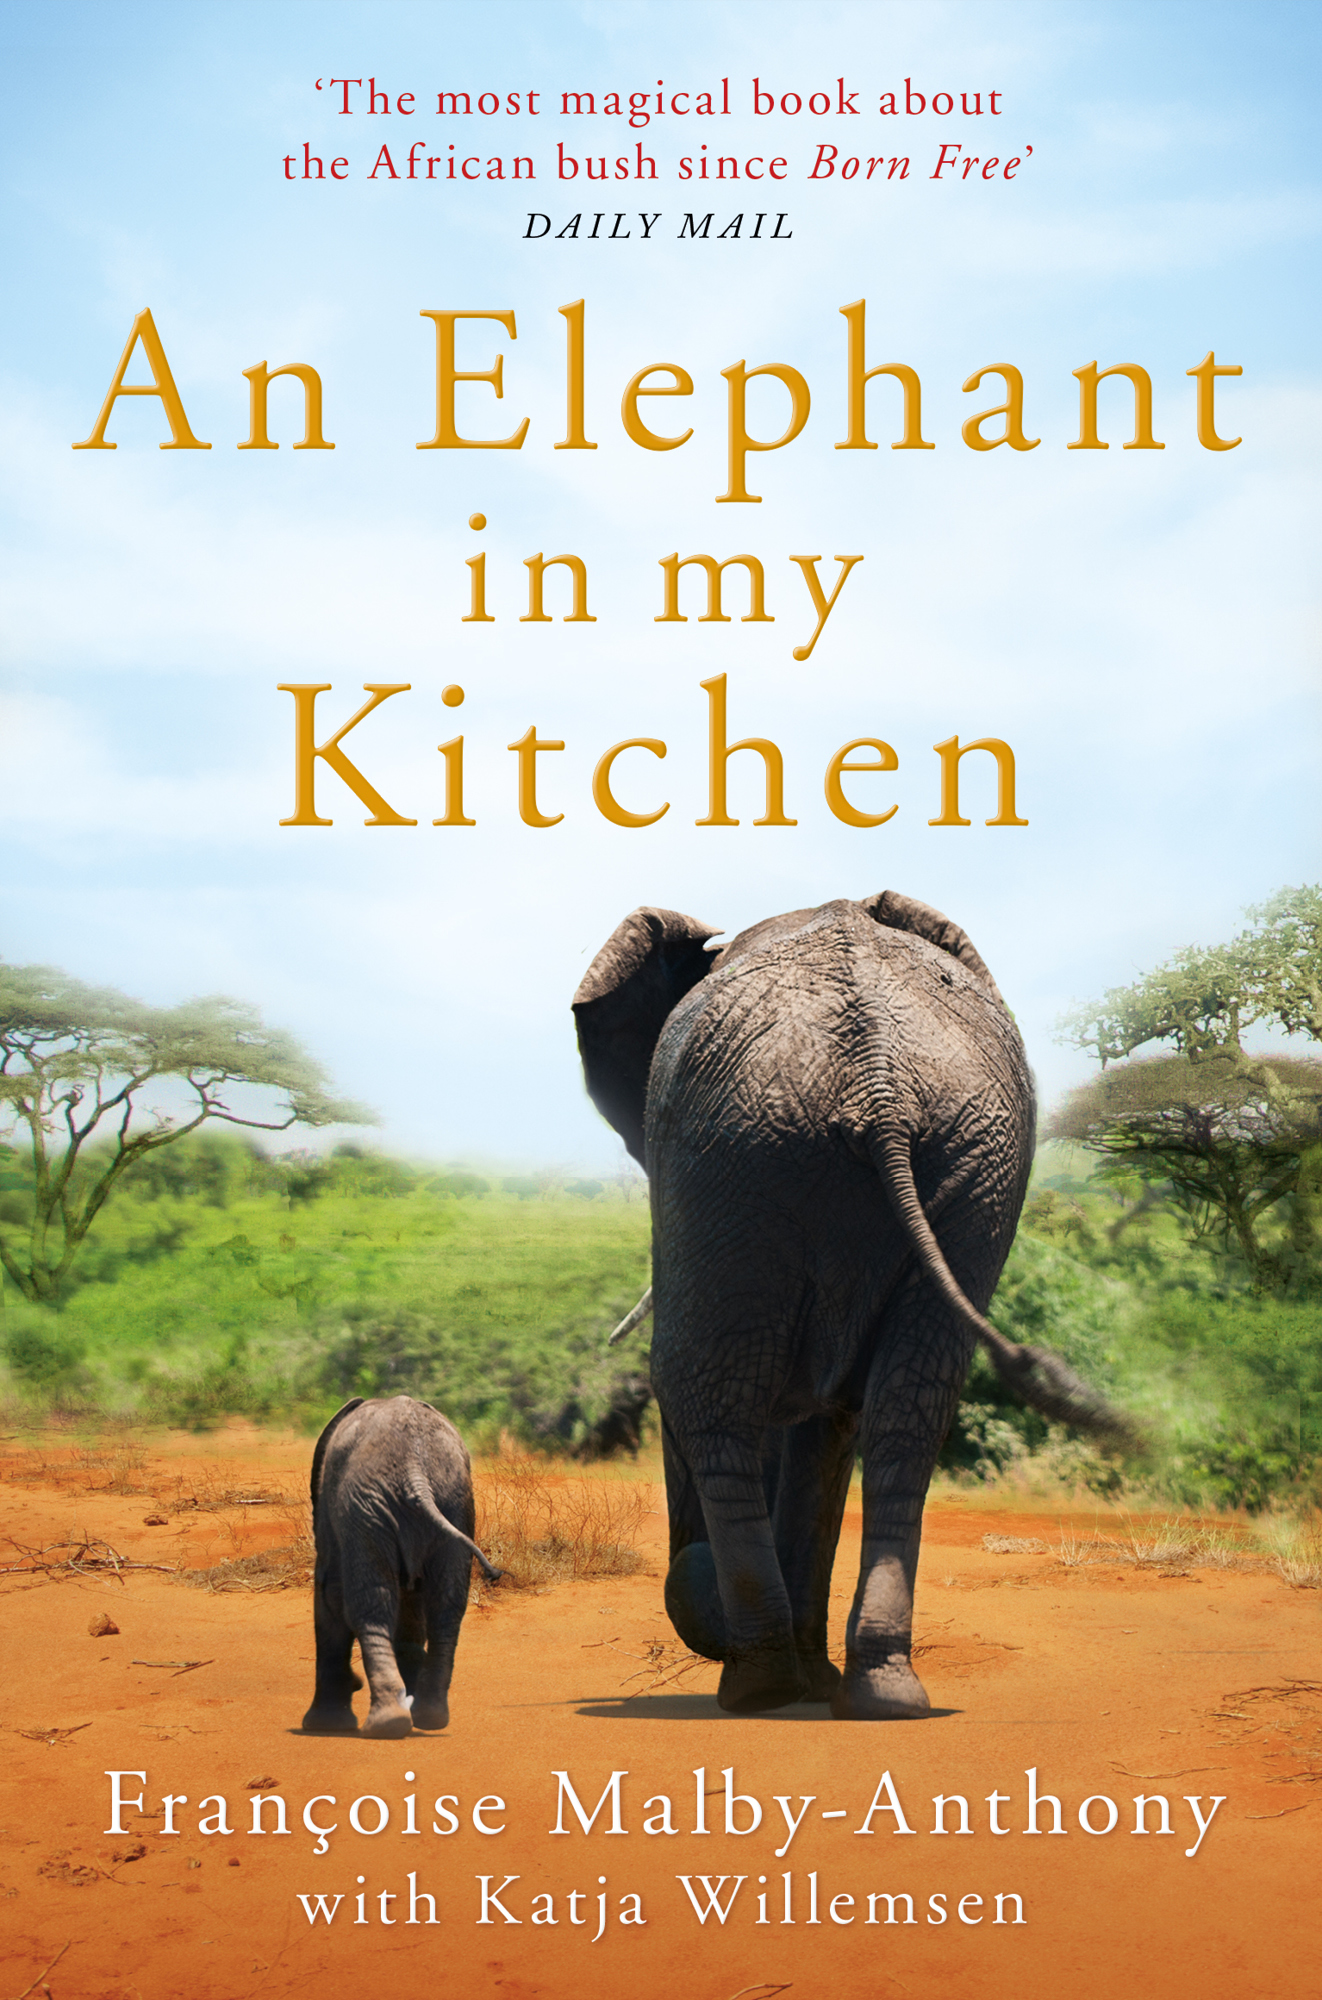 An Elephant In My Kitchen, Françoise Malby-Anthony's best-selling book